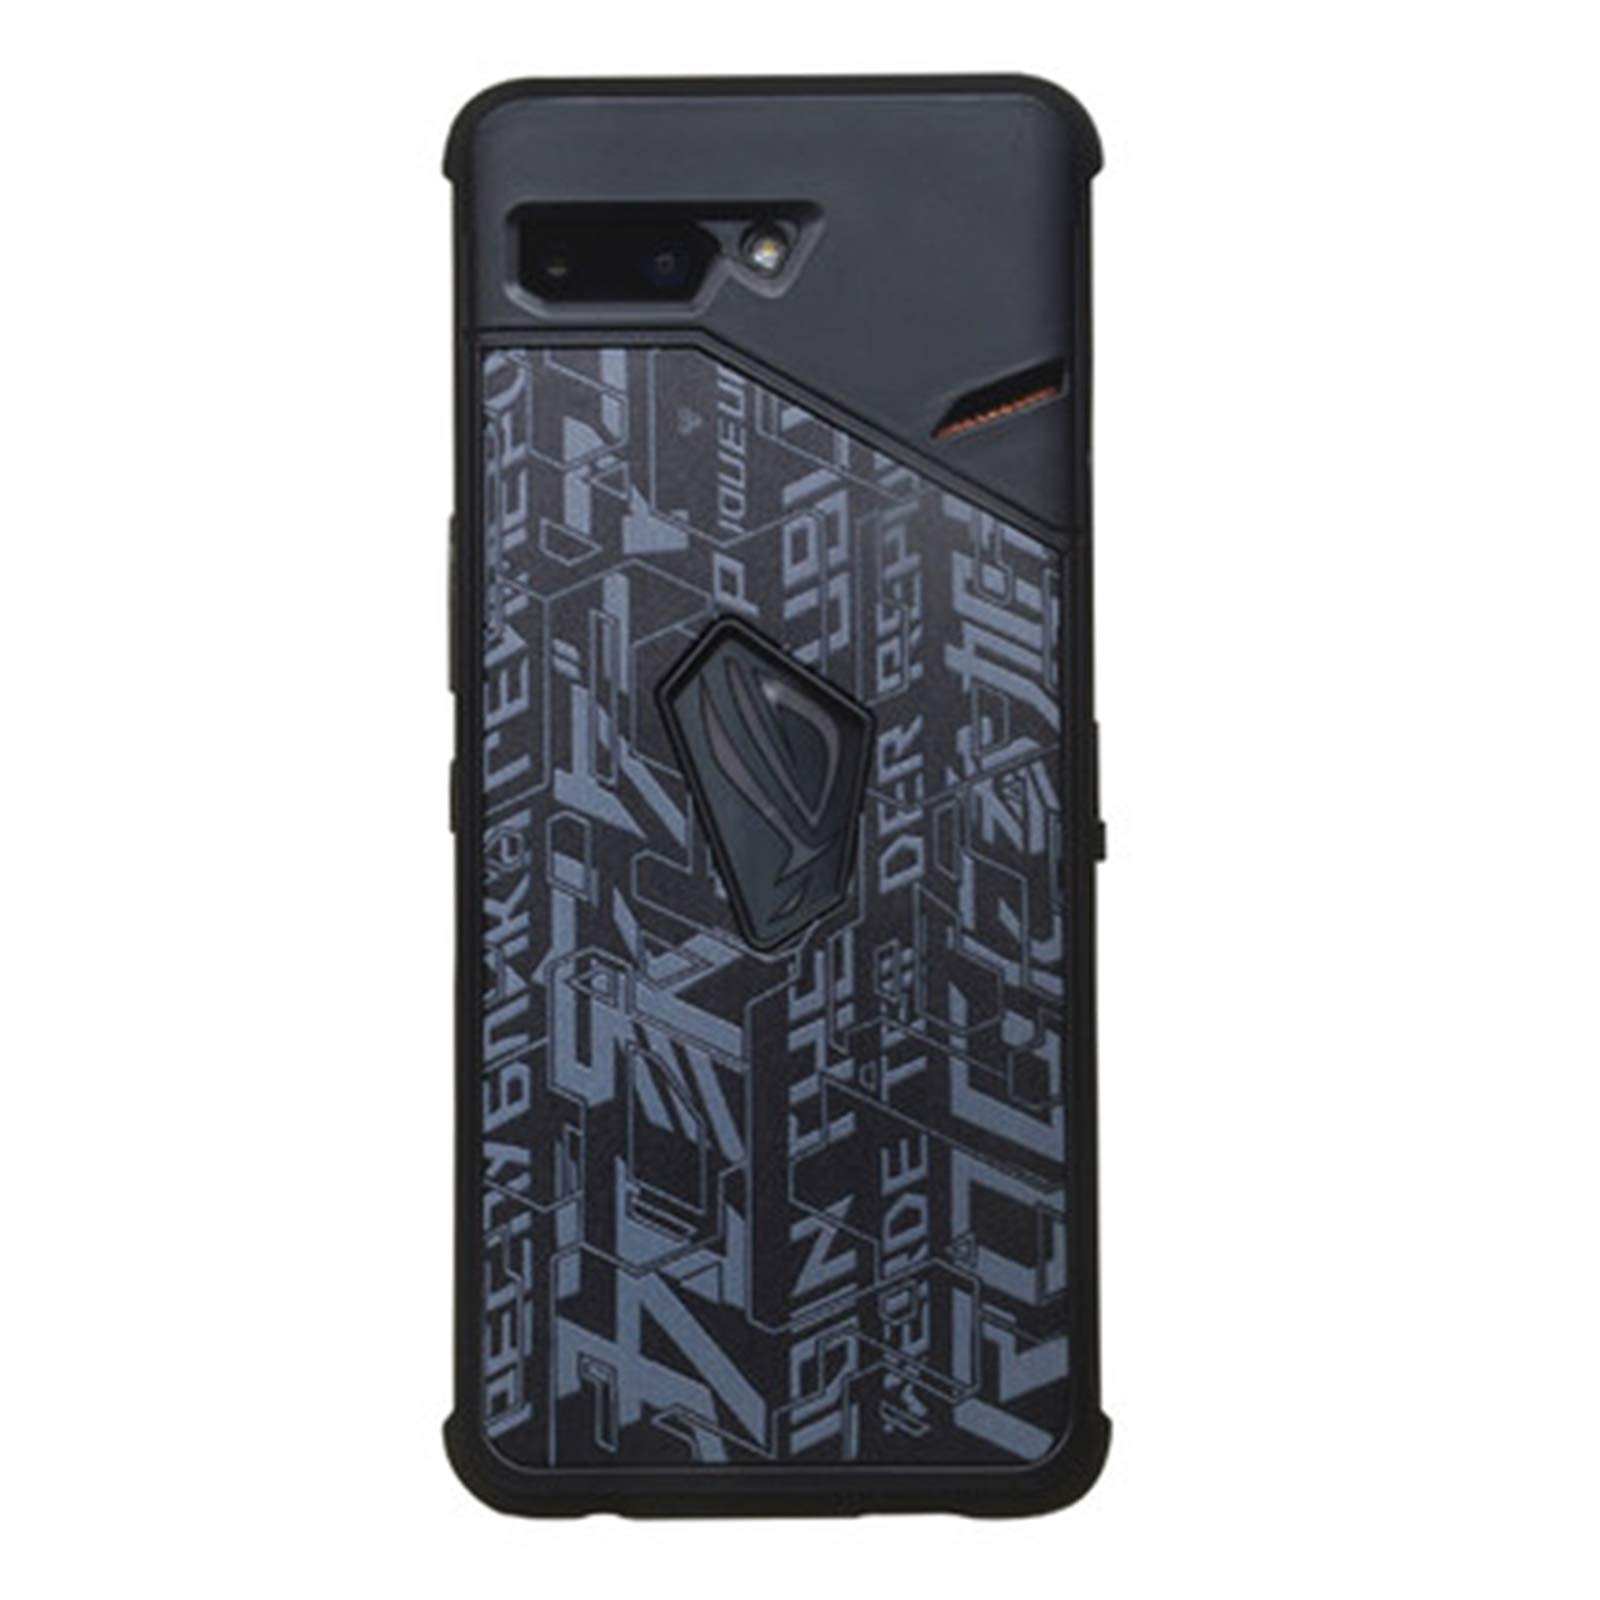 LICHIFIT Hard PC Phone Shell Protective Case Cover for ASUS ROG Phone 2 II / ZS660KL Accessories